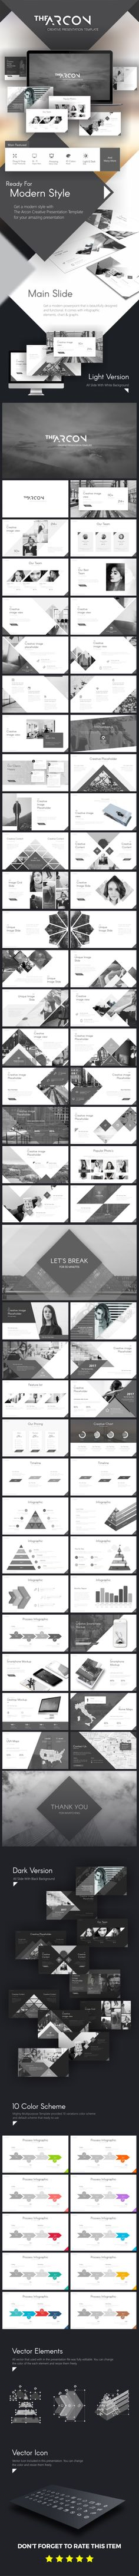 The Arcon Creative Presentation Template - #Business #PowerPoint #Templates Download here: https://graphicriver.net/item/the-arcon-creative-presentation-template/19533857?ref=alena994